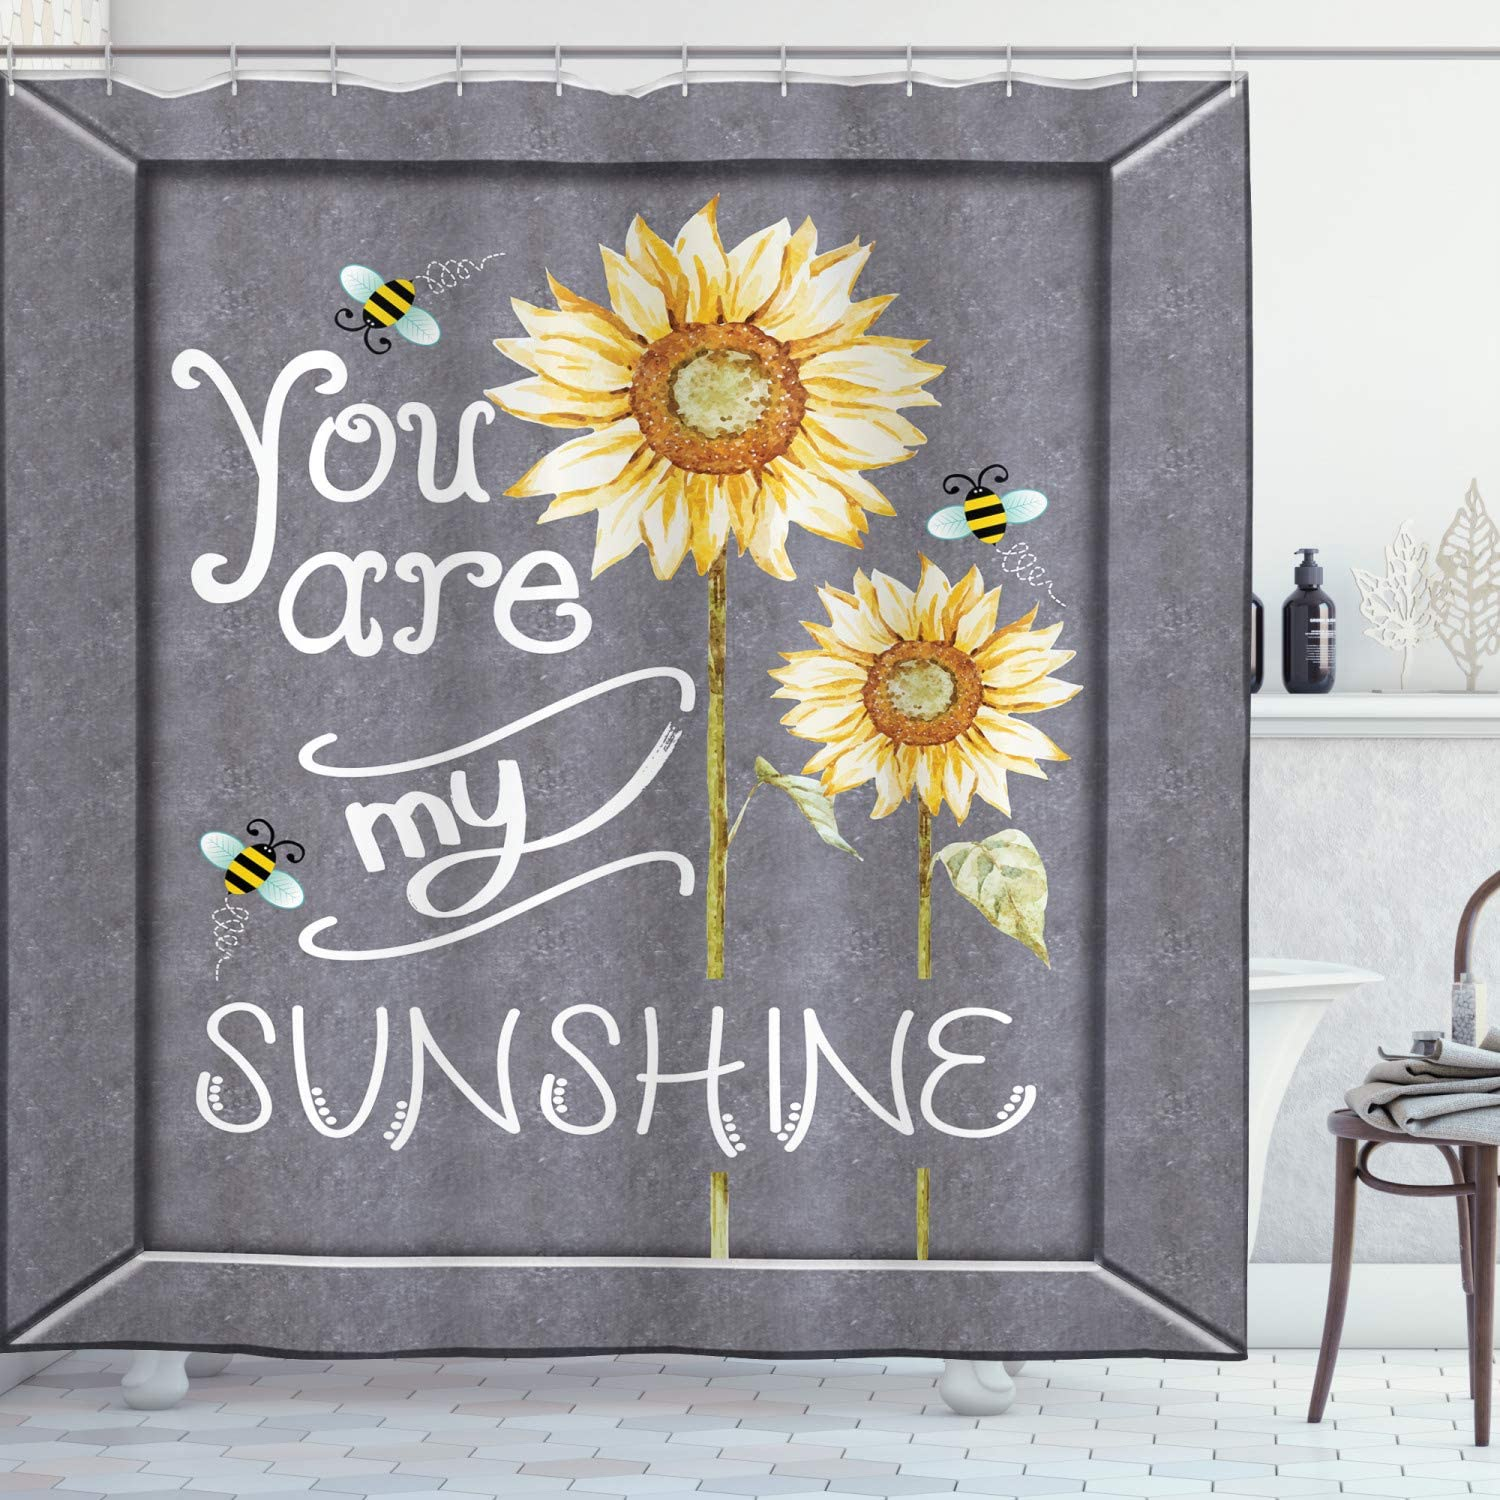 Ambesonne You are My Sunshine Shower Curtain, You are My Sunshine Words on  Blackboard Bees Sunflowers Vintage Image, Cloth Fabric Bathroom Decor Set